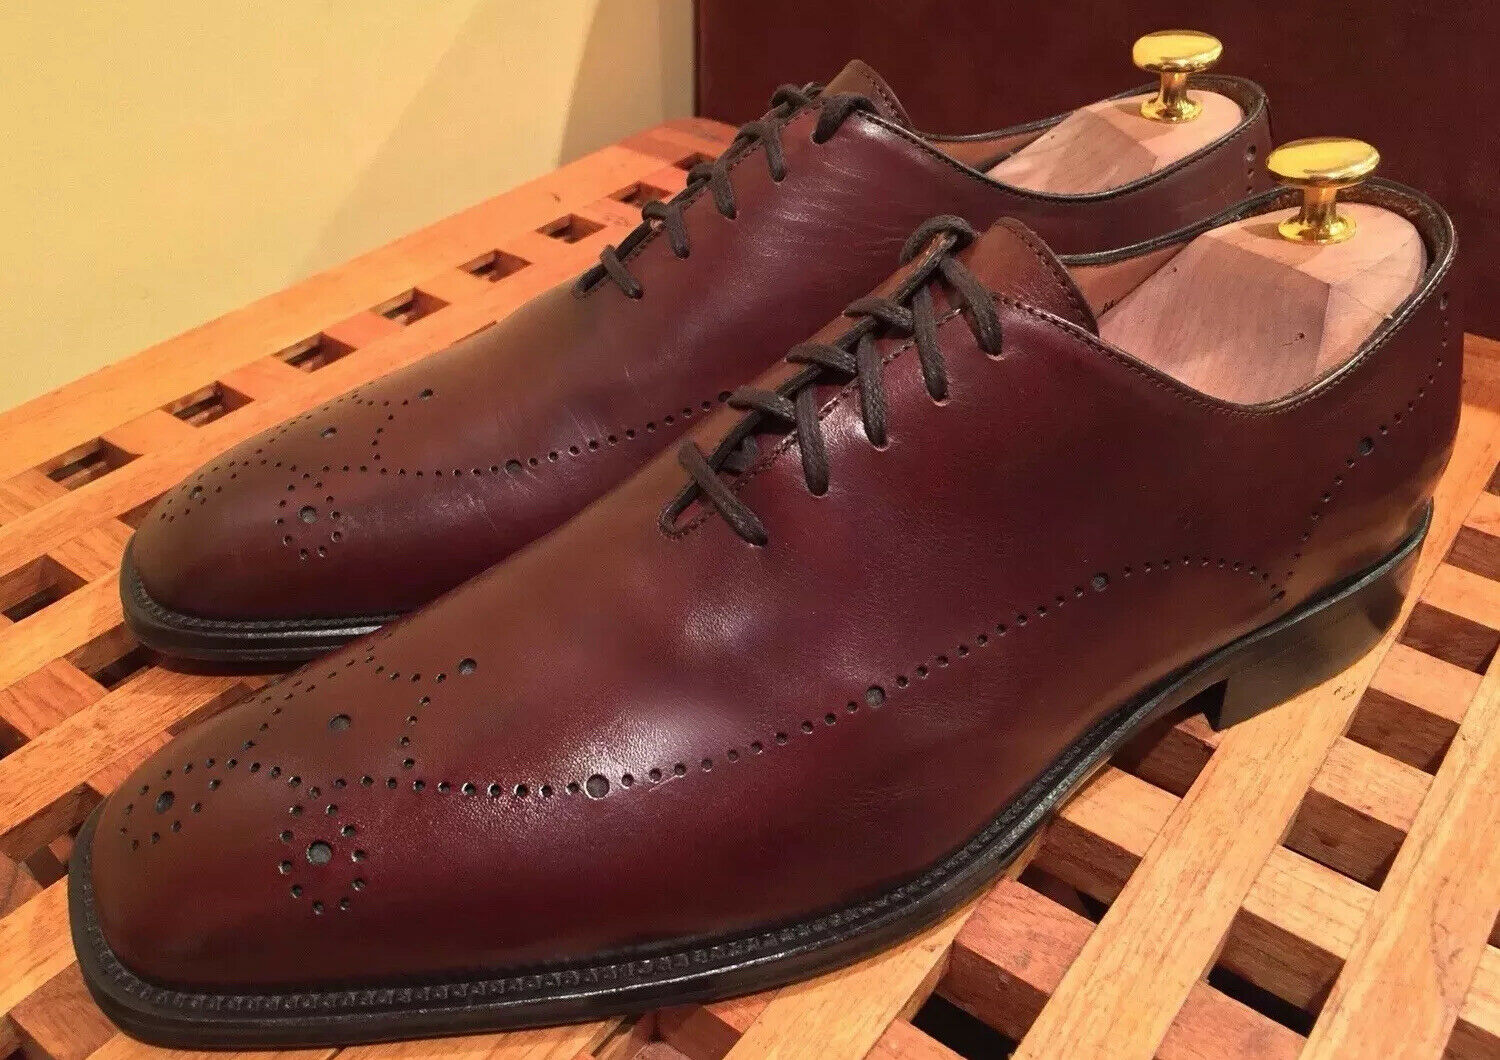 Johnston and Murphy Burgandy Lace Up Dress Shoes Handcrafted In ITALY 10.5 M